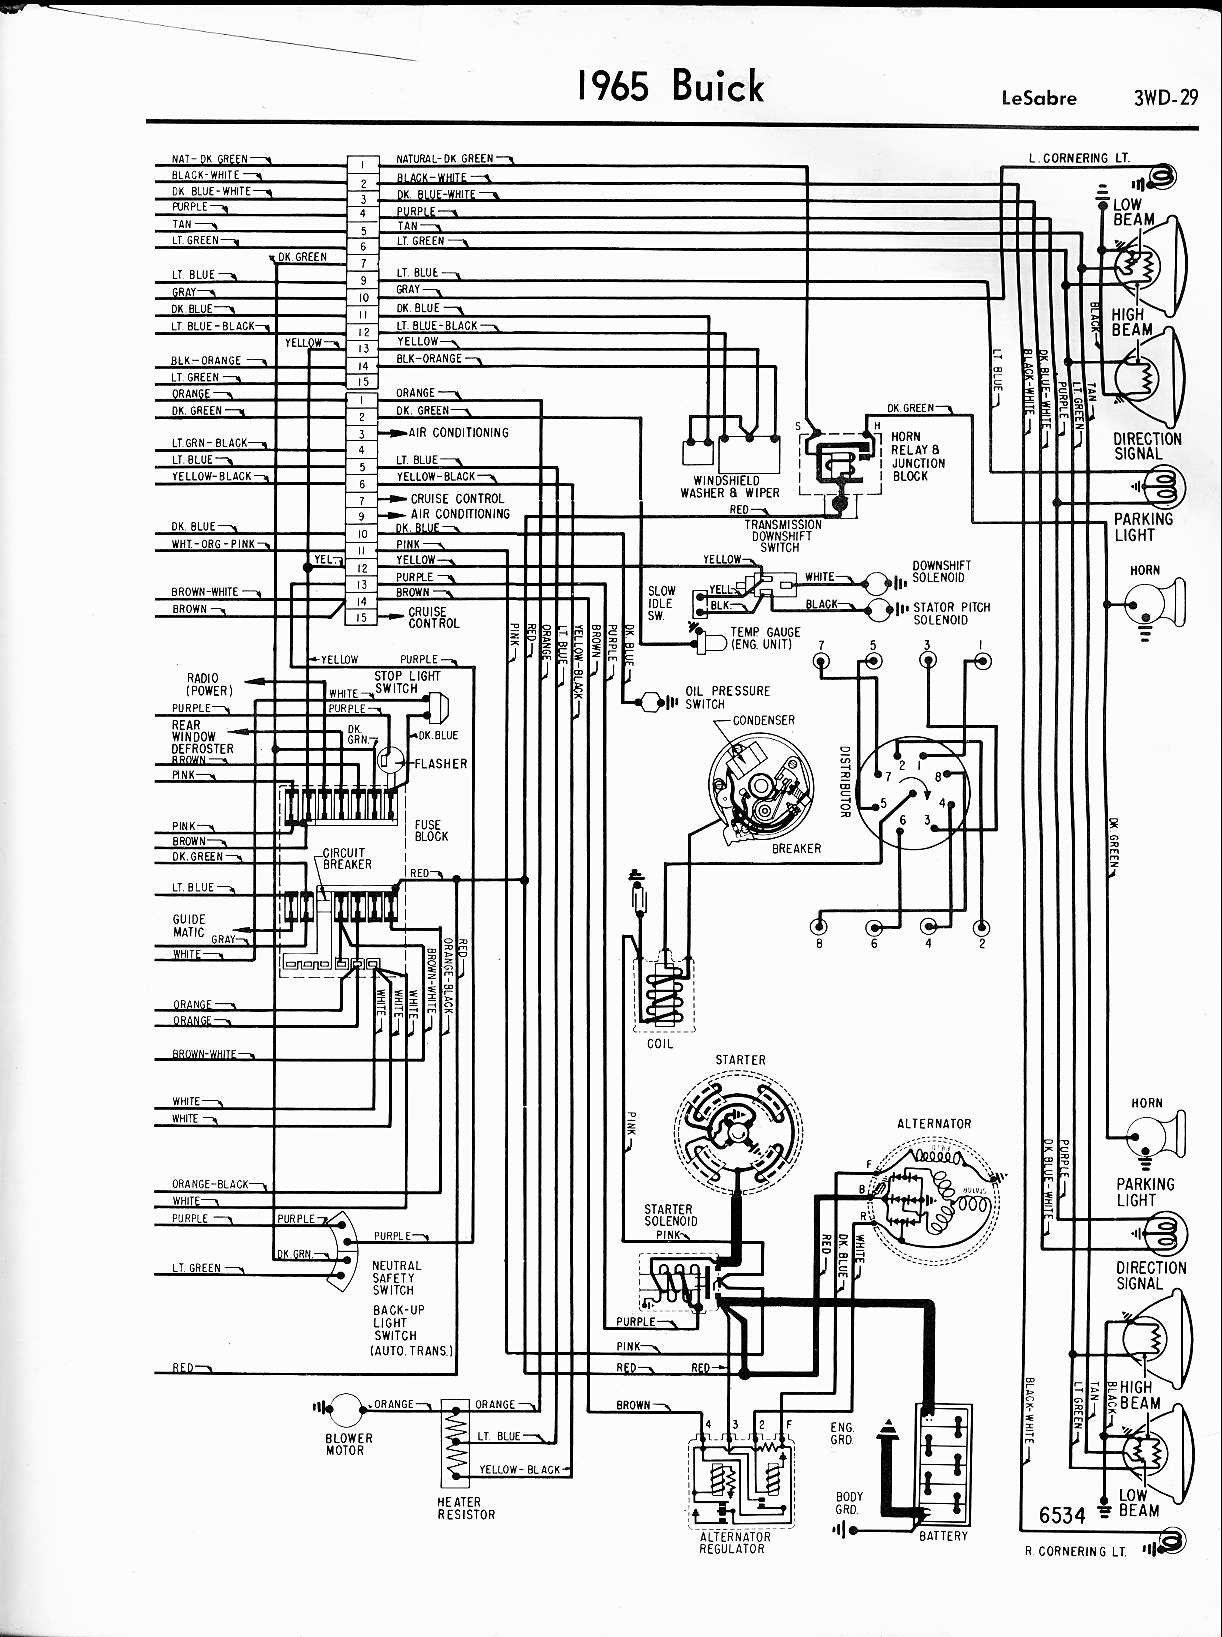 2000 Buick Lesabre Engine Diagram Free Buick Wiring Diagrams Data Schematics Wiring Diagram • Of 2000 Buick Lesabre Engine Diagram 2003 Buick Lesabre Radio Wiring Diagram Book F53 Wiring Radio